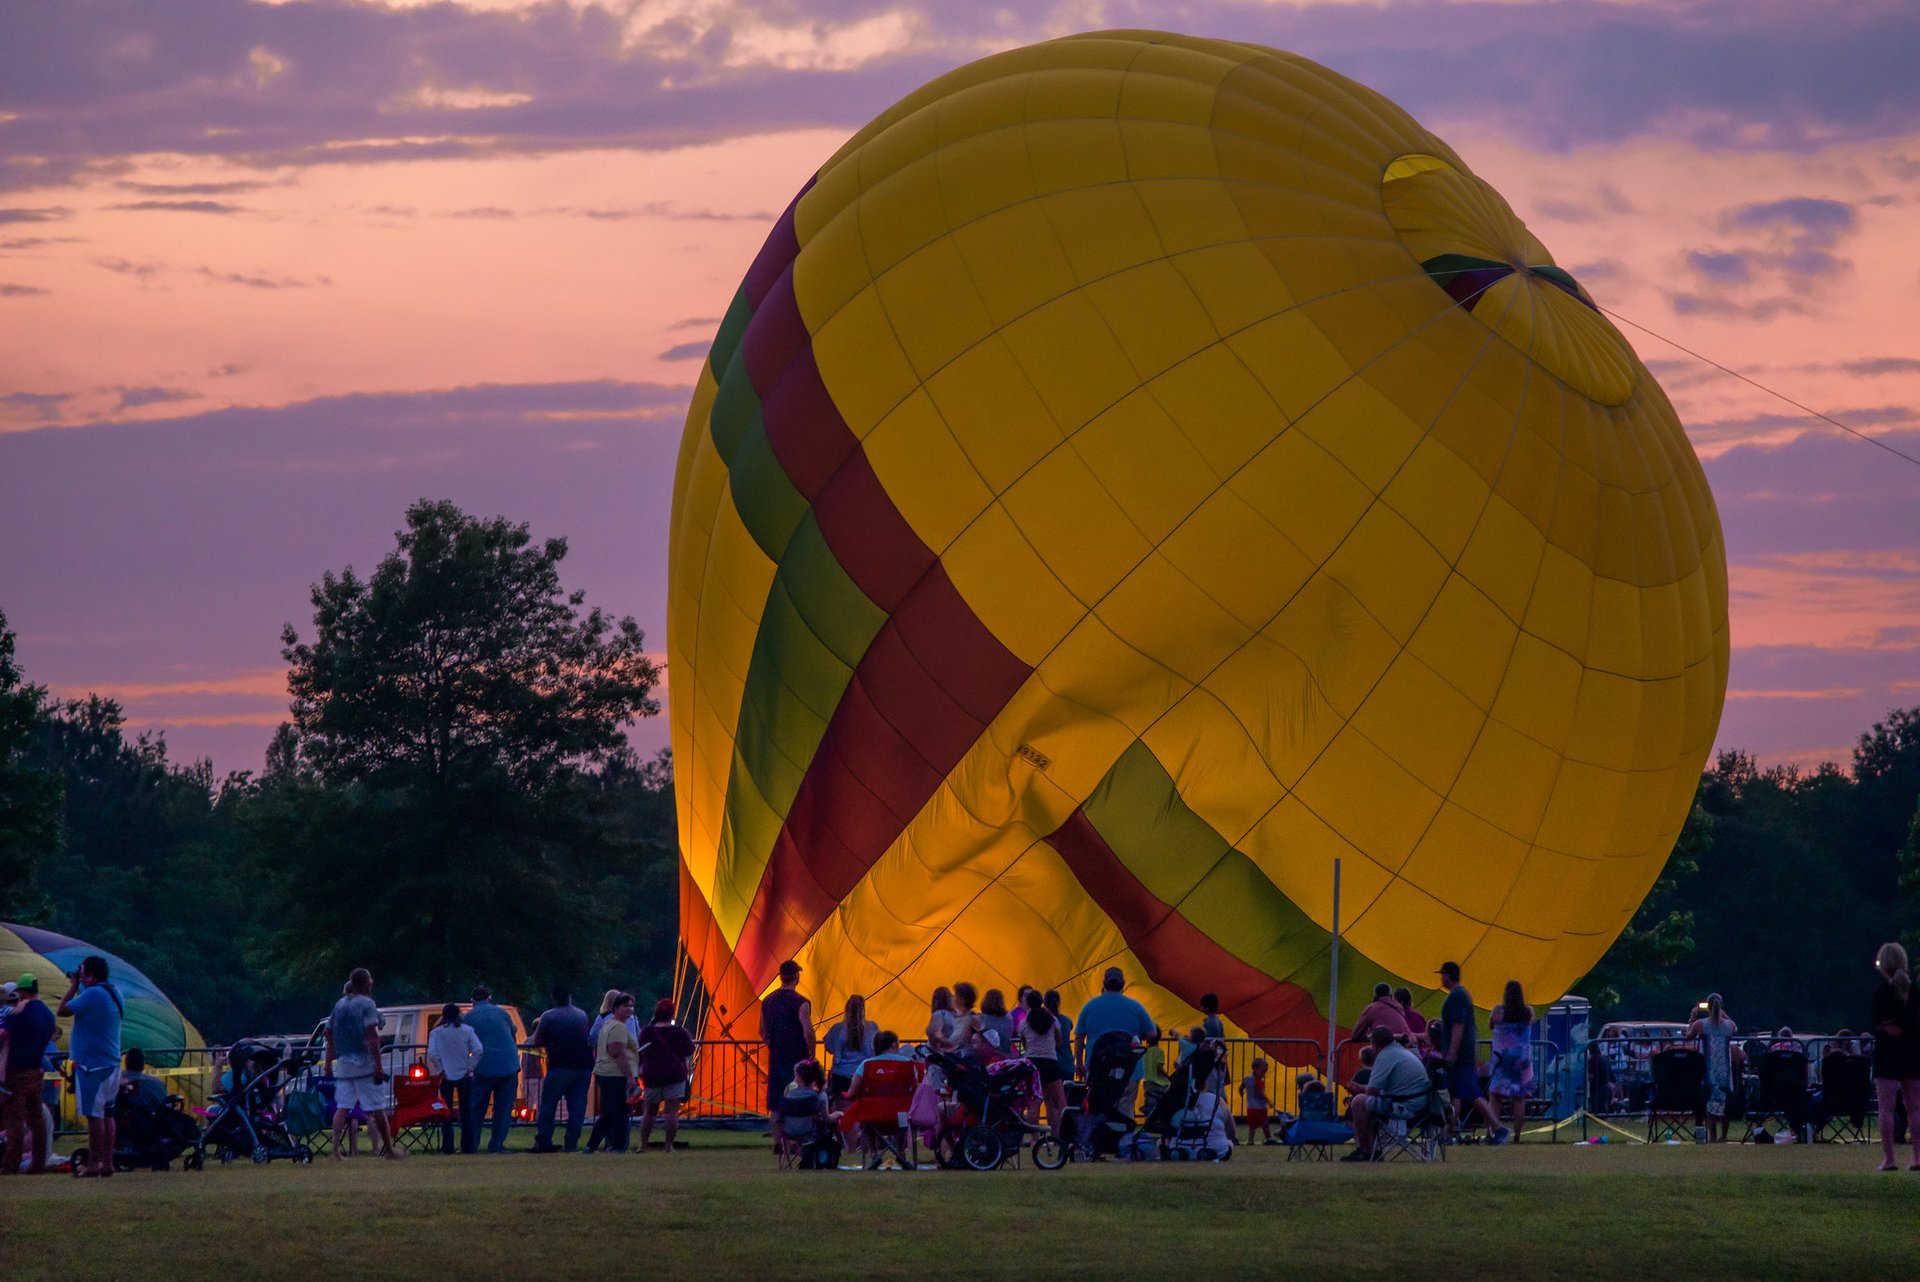 Best time to see Gulf Coast Hot Air Balloon Festival in Alabama 2020